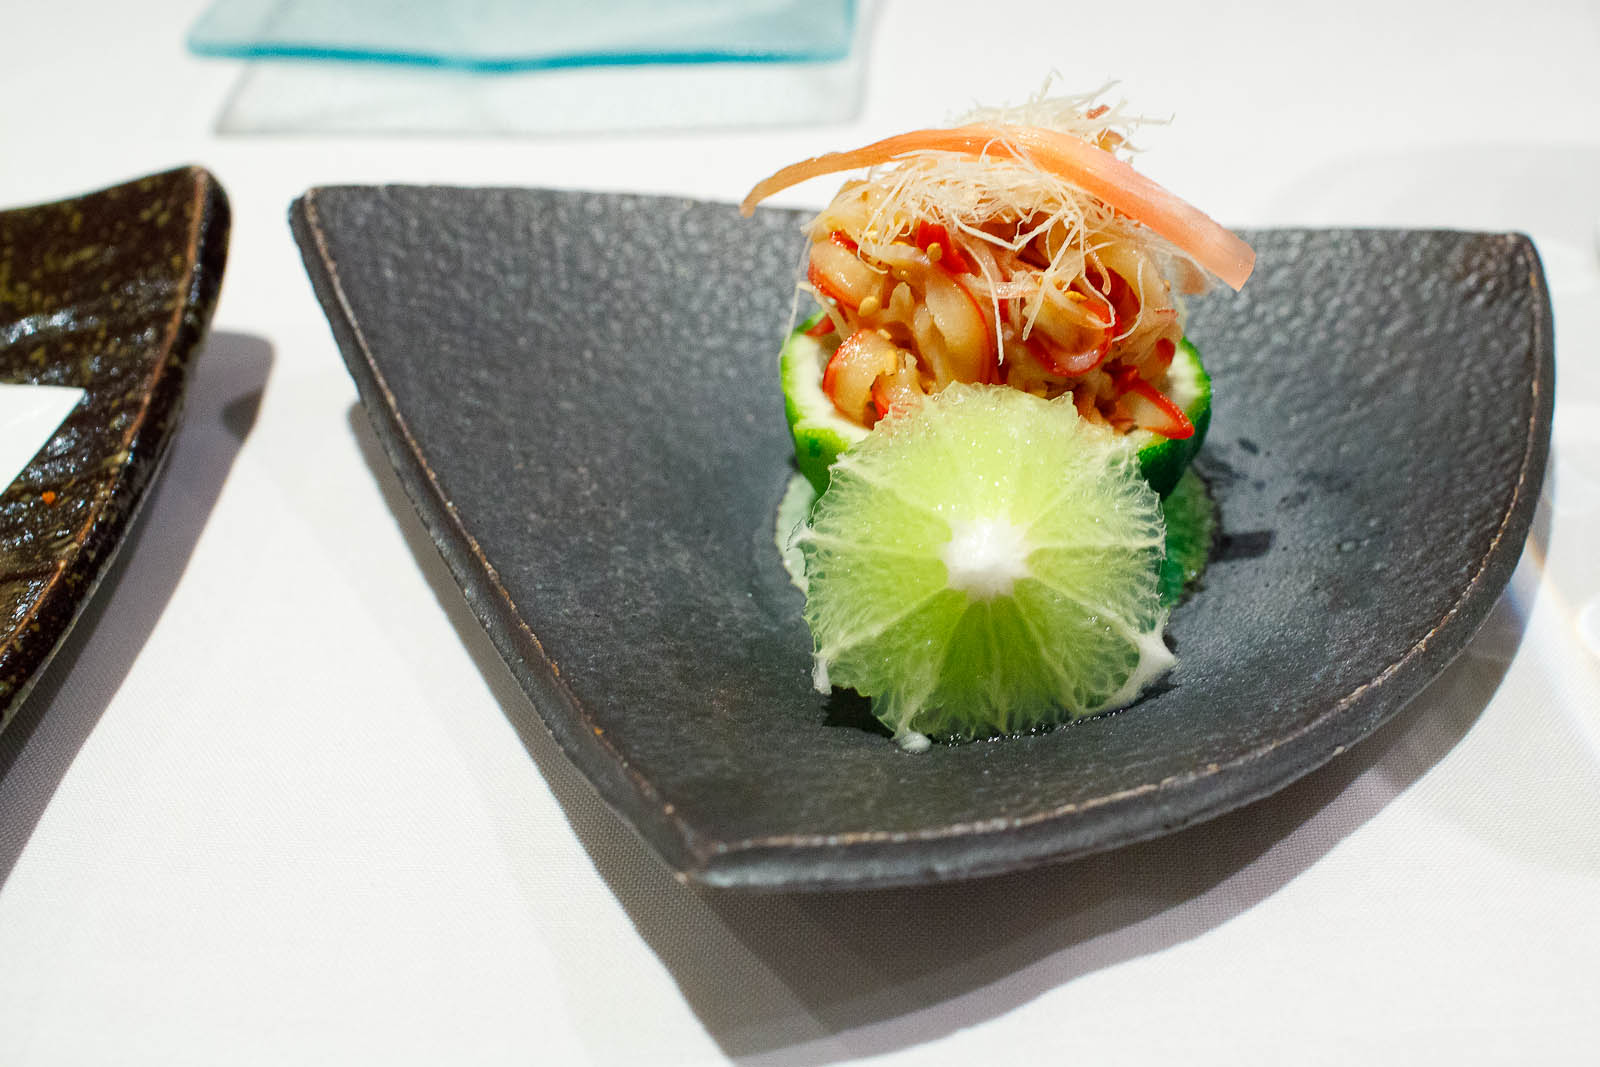 Hokki nuta - thinly sliced surf clam with myoga ginger shoots an